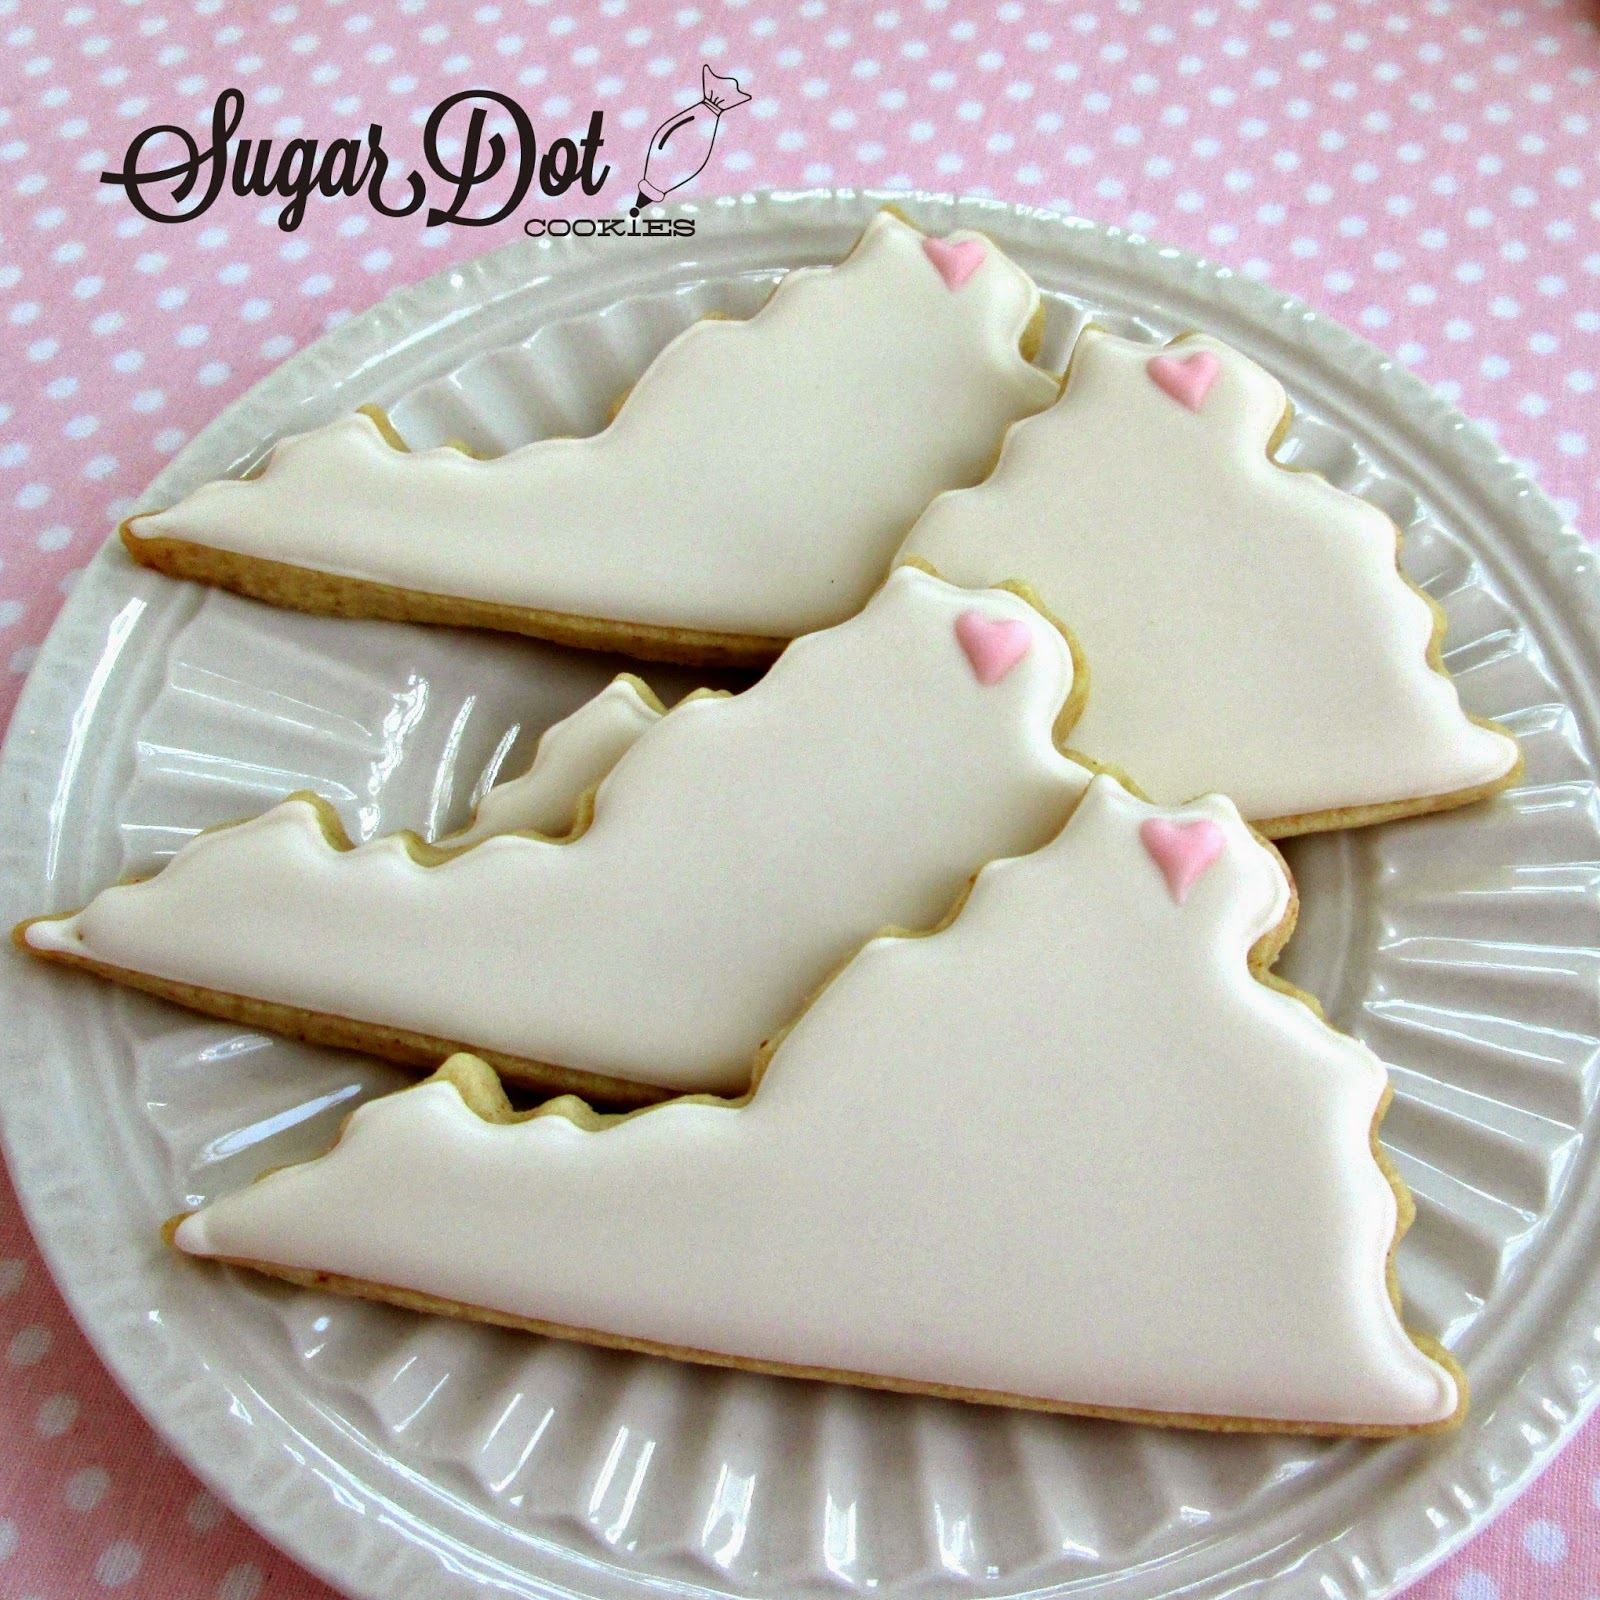 Sugar Dot Cookies: State Cookies with Heart